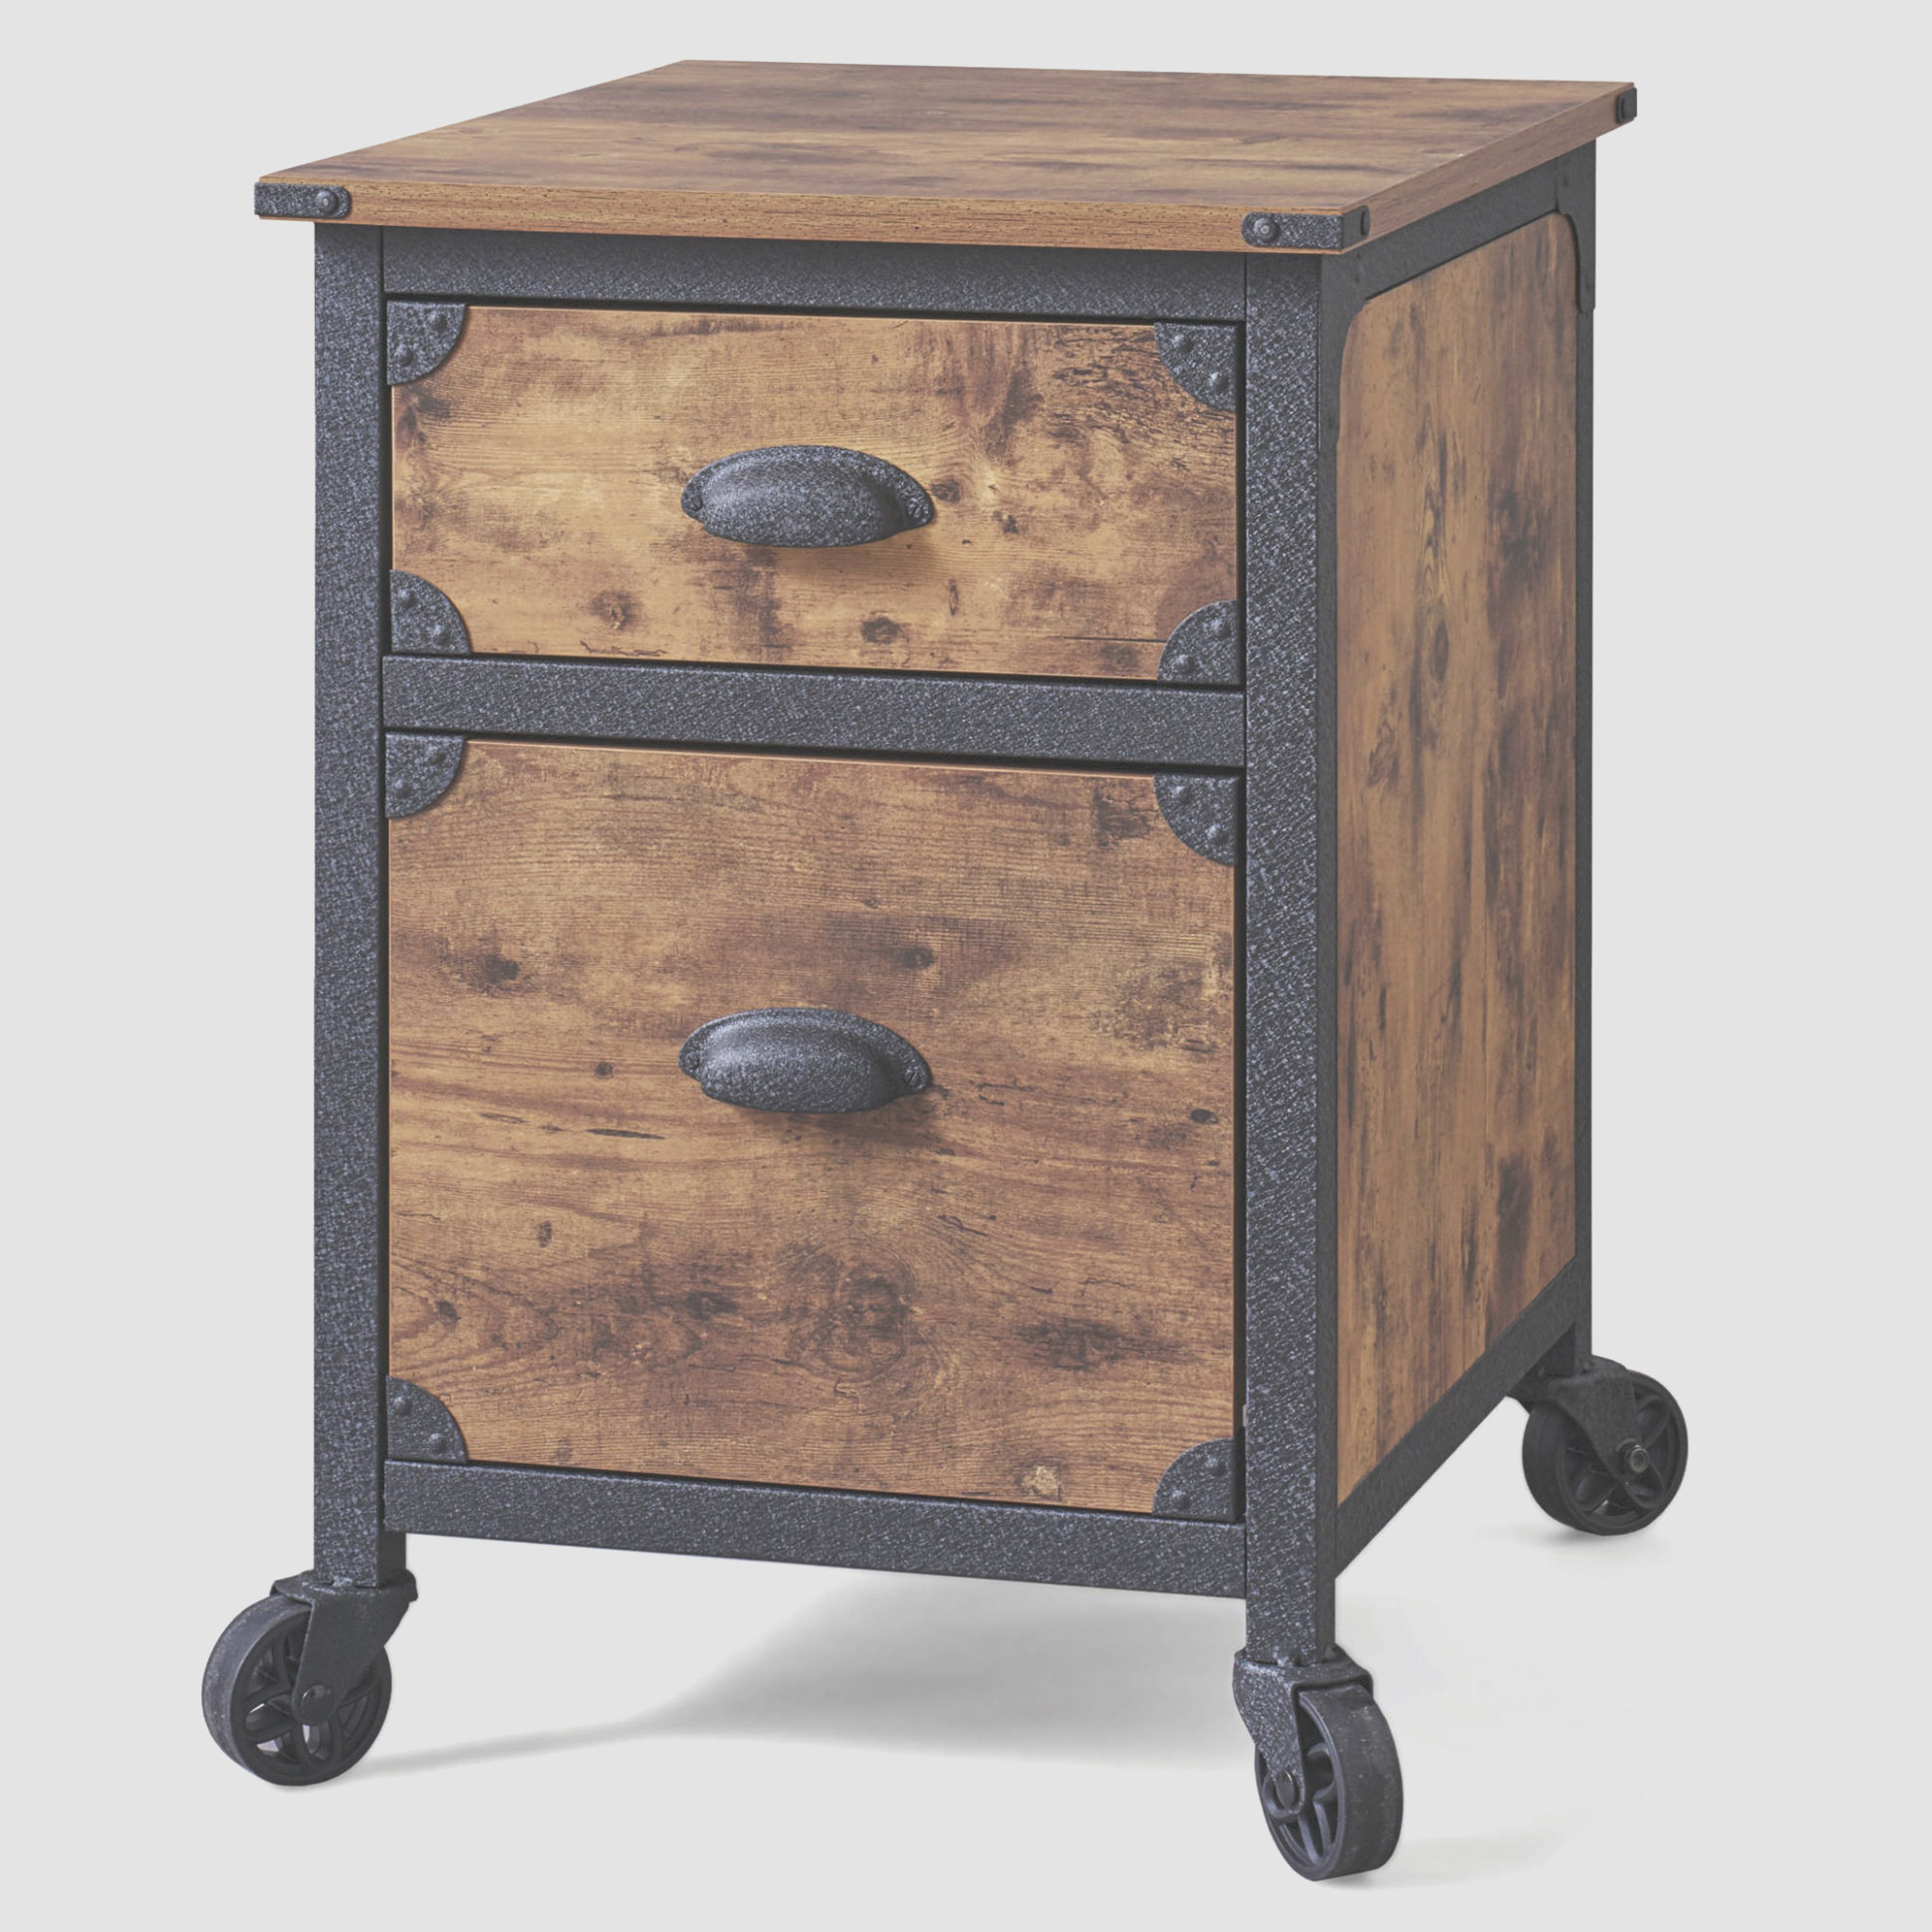 File Cabinets for Home Use